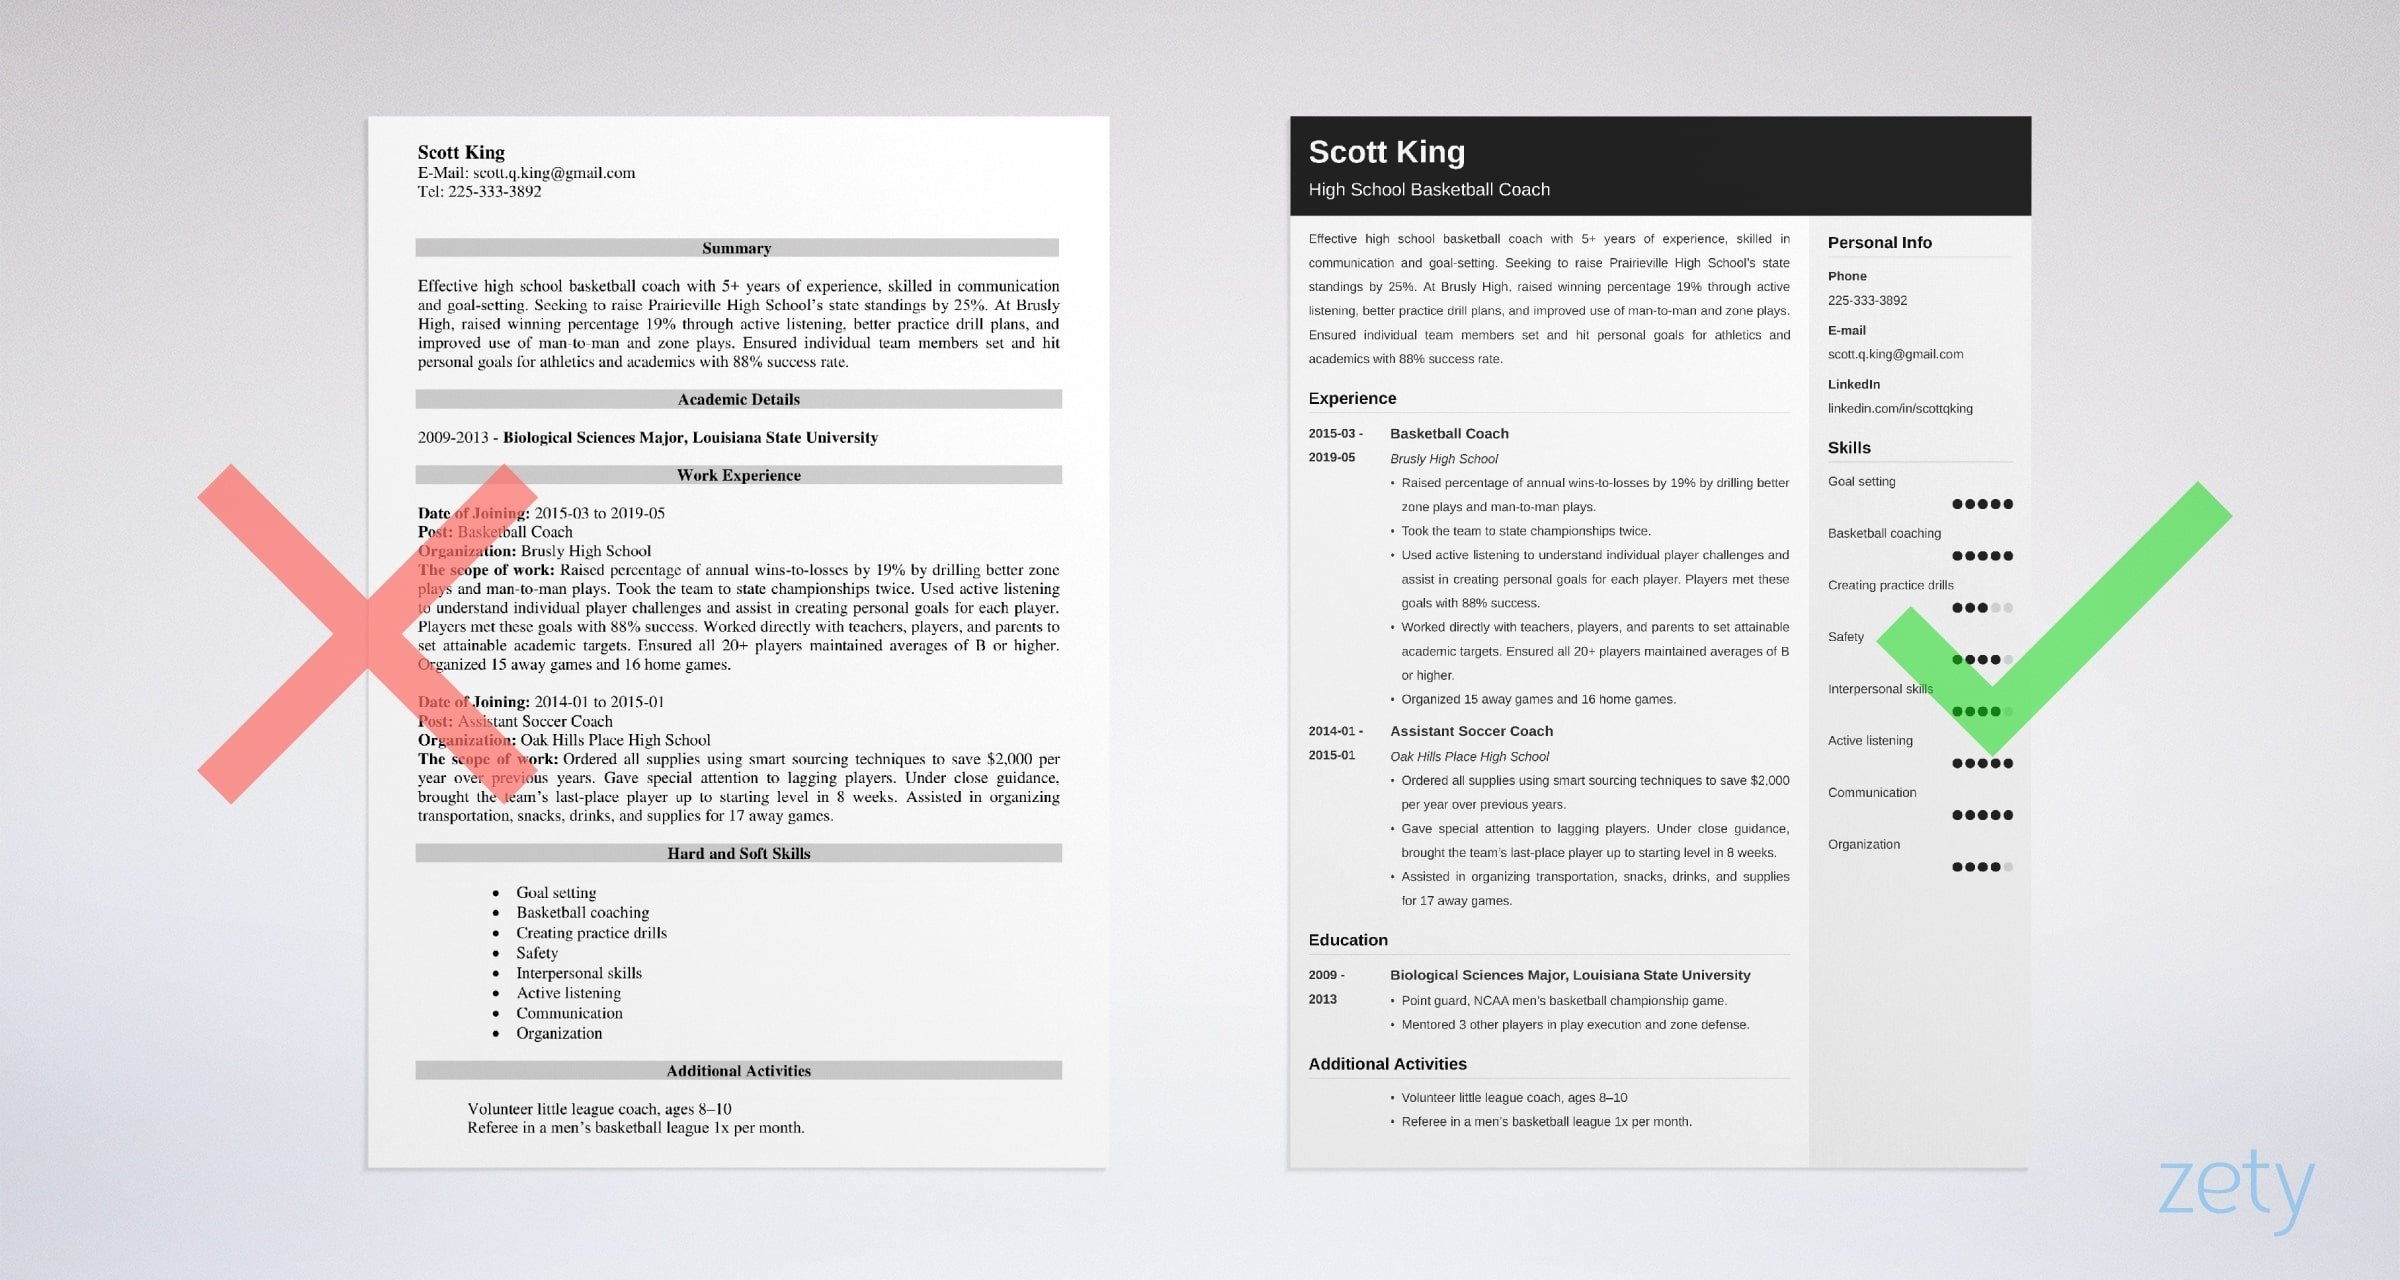 coaching resume samples also for high school coach jobs sports template example Resume High School Sports Resume Template